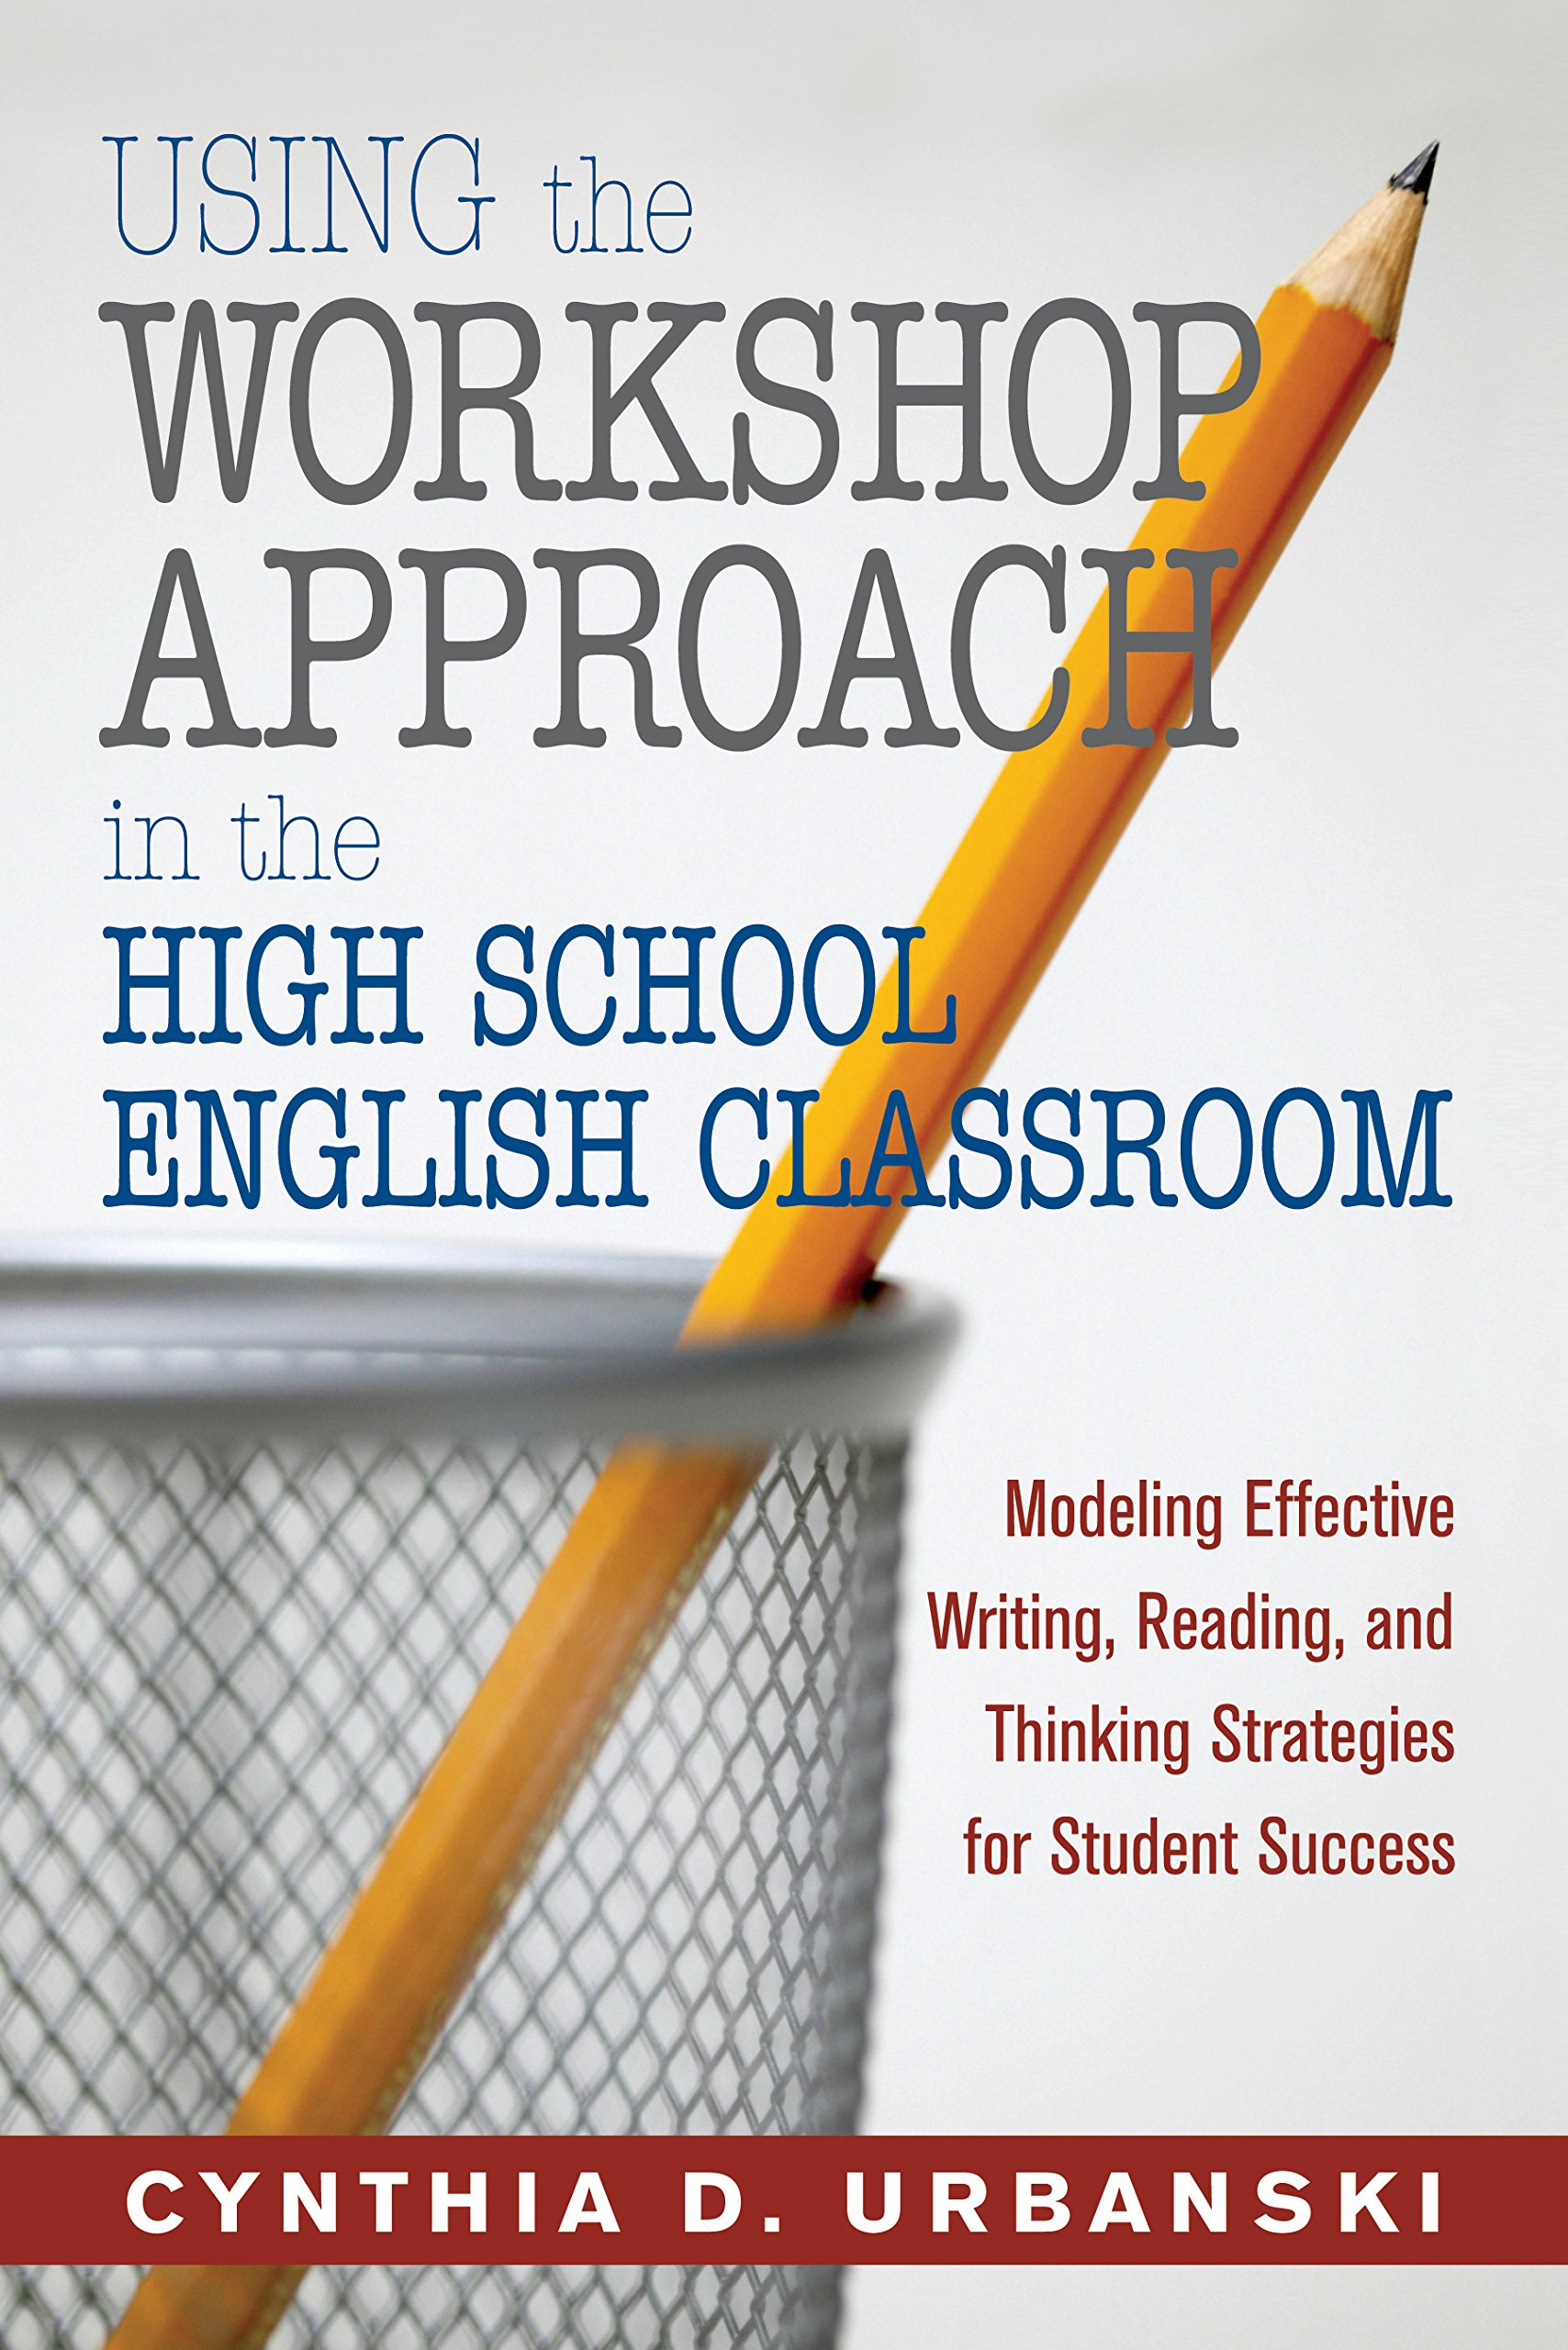 Workshop Approach School English Classroom product image